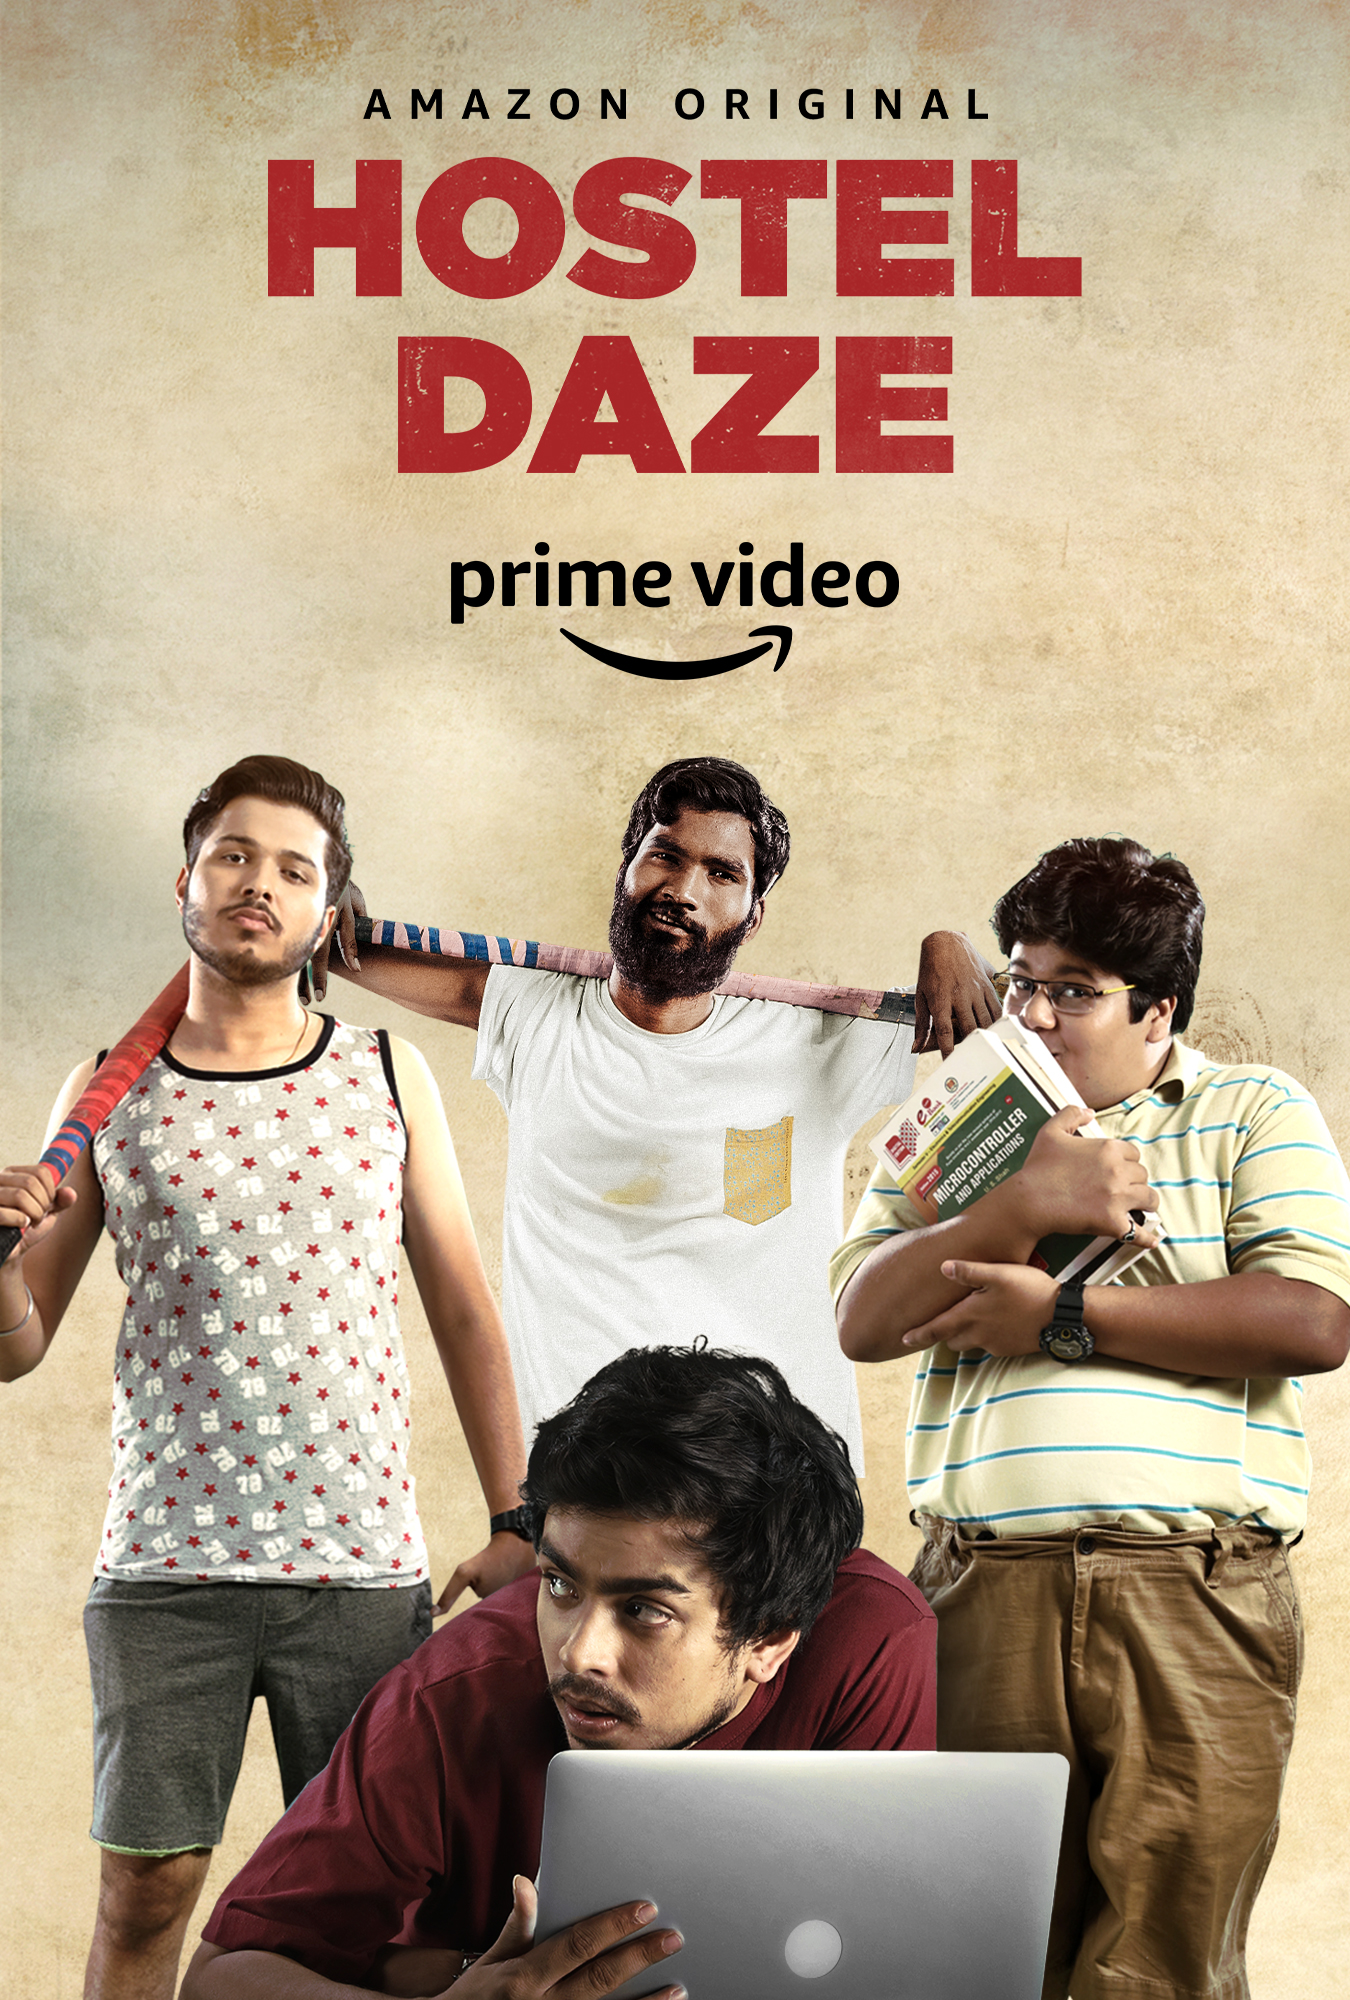 Hostel Daze (TV Mini-Series 2019– ) - IMDb